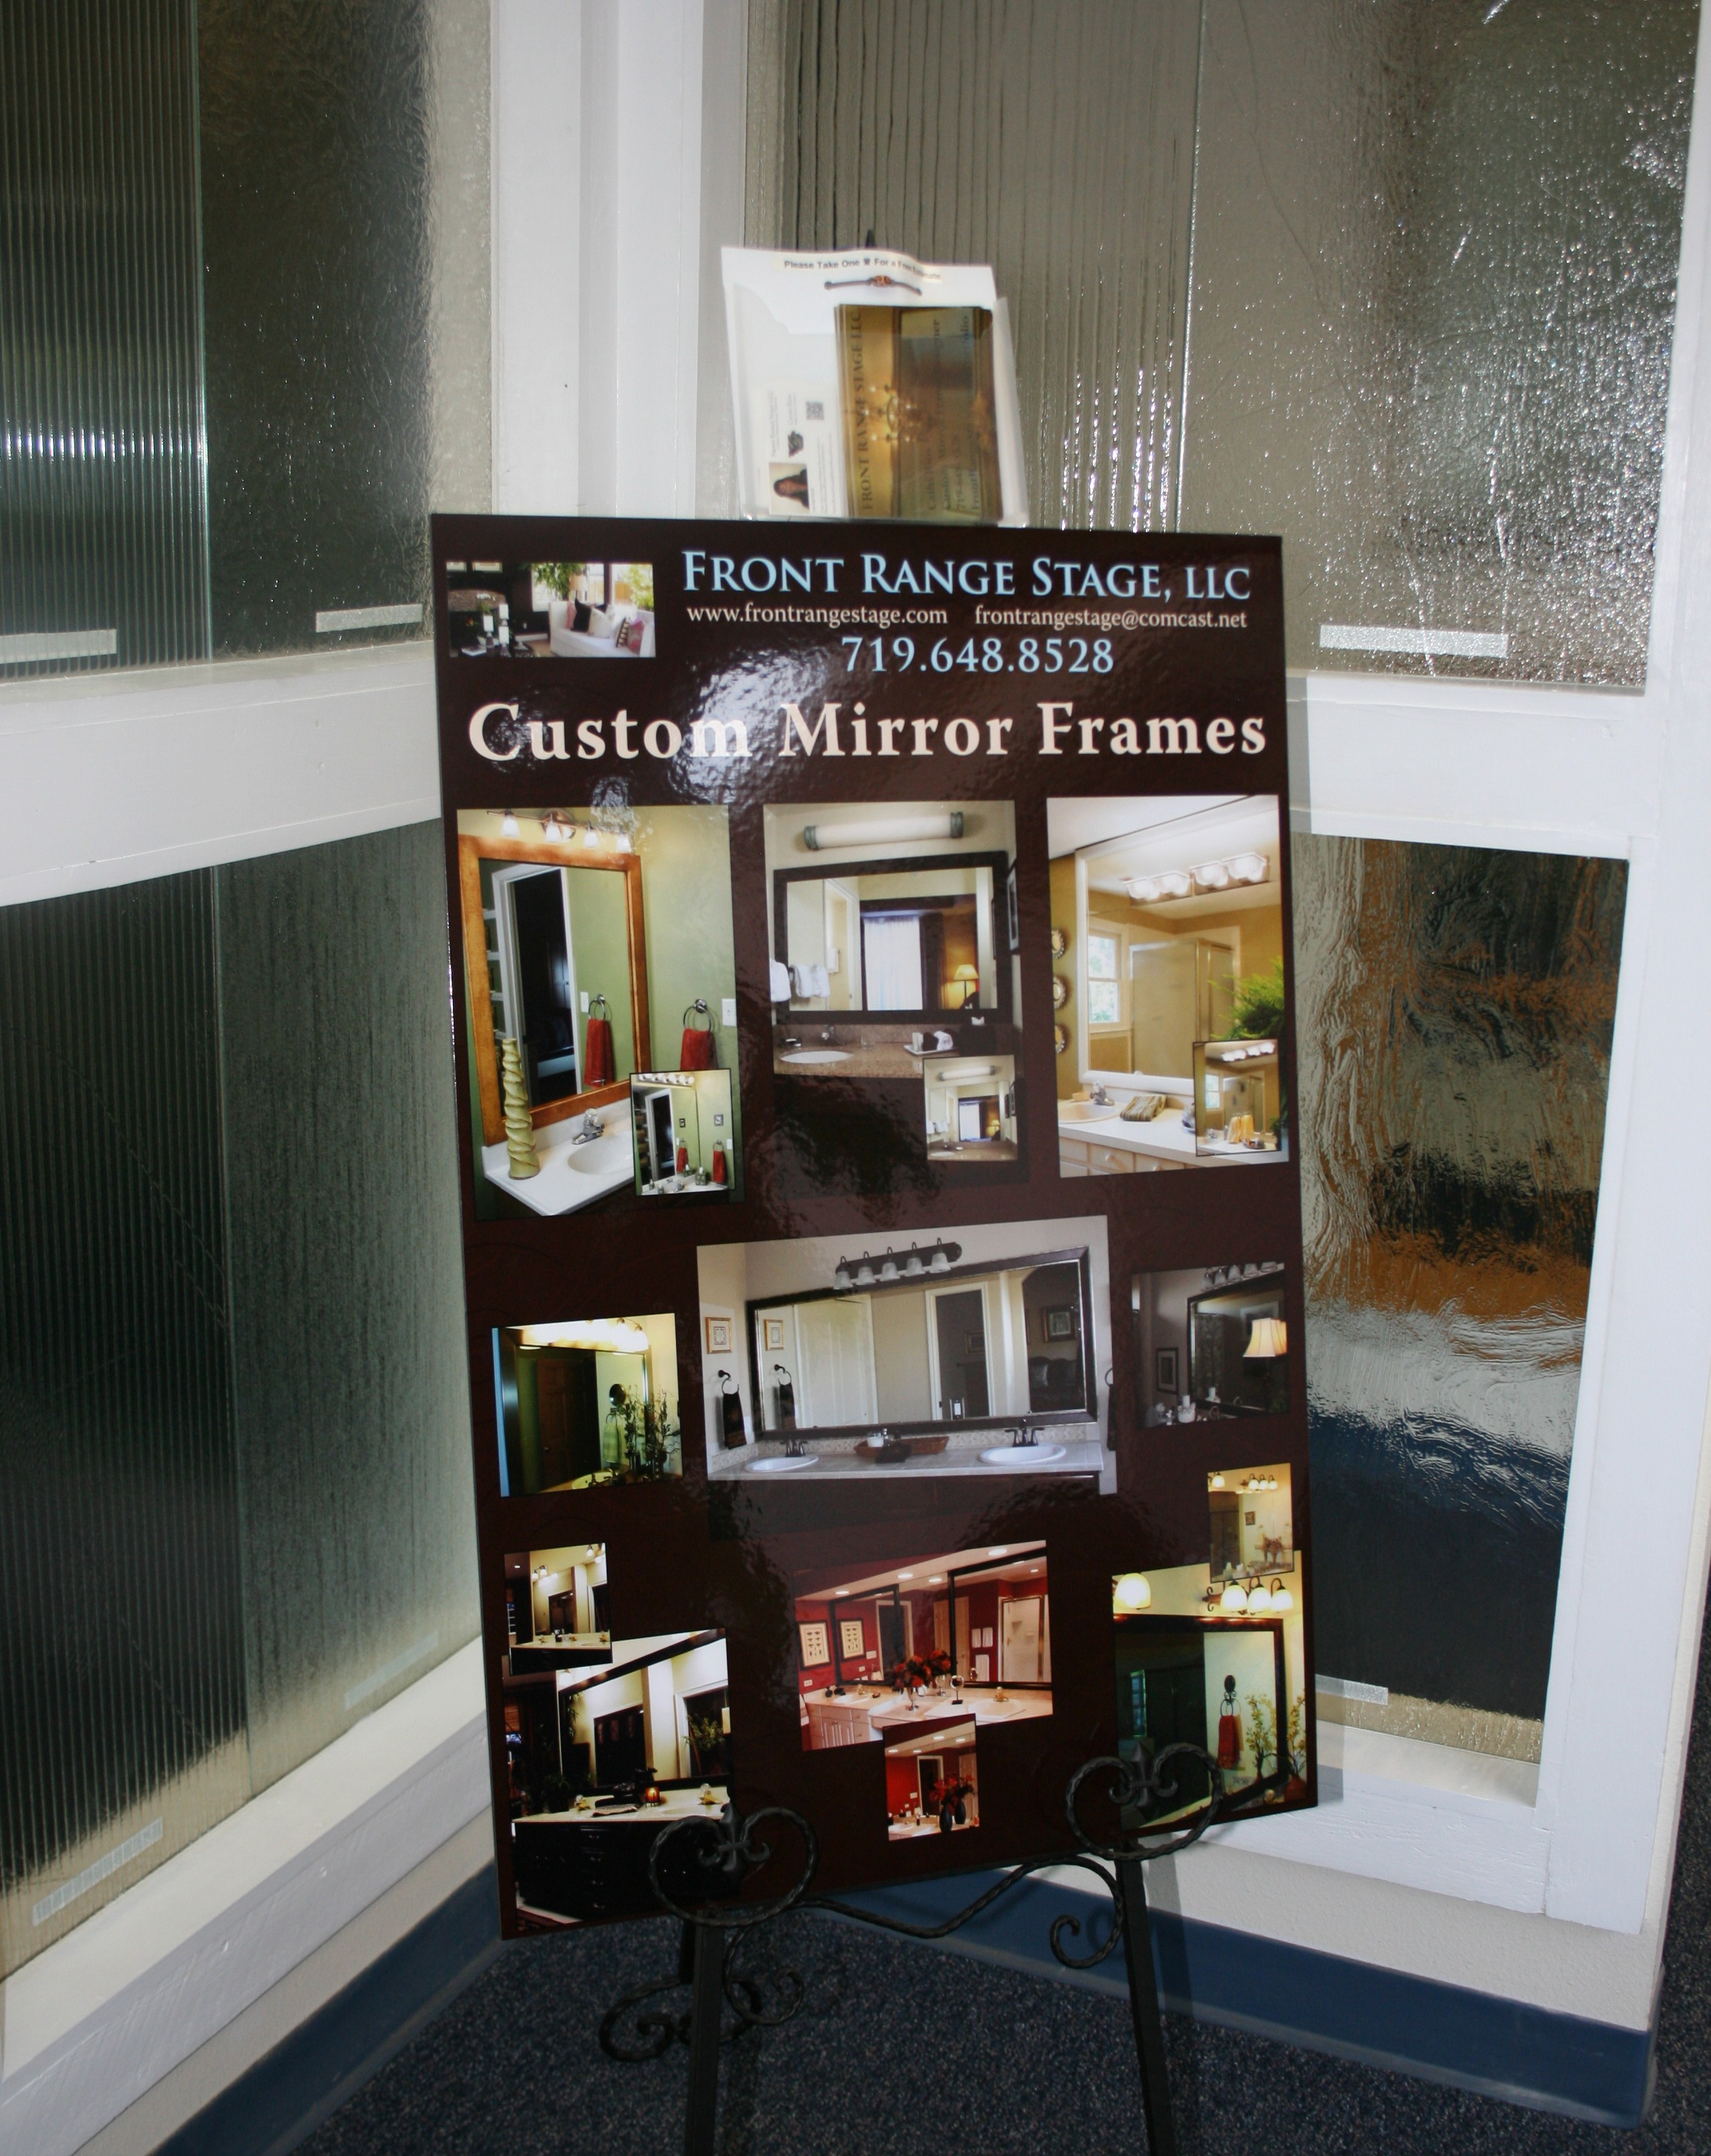 Front Range Stage and Colorado Springs City Glass offer Custom ...